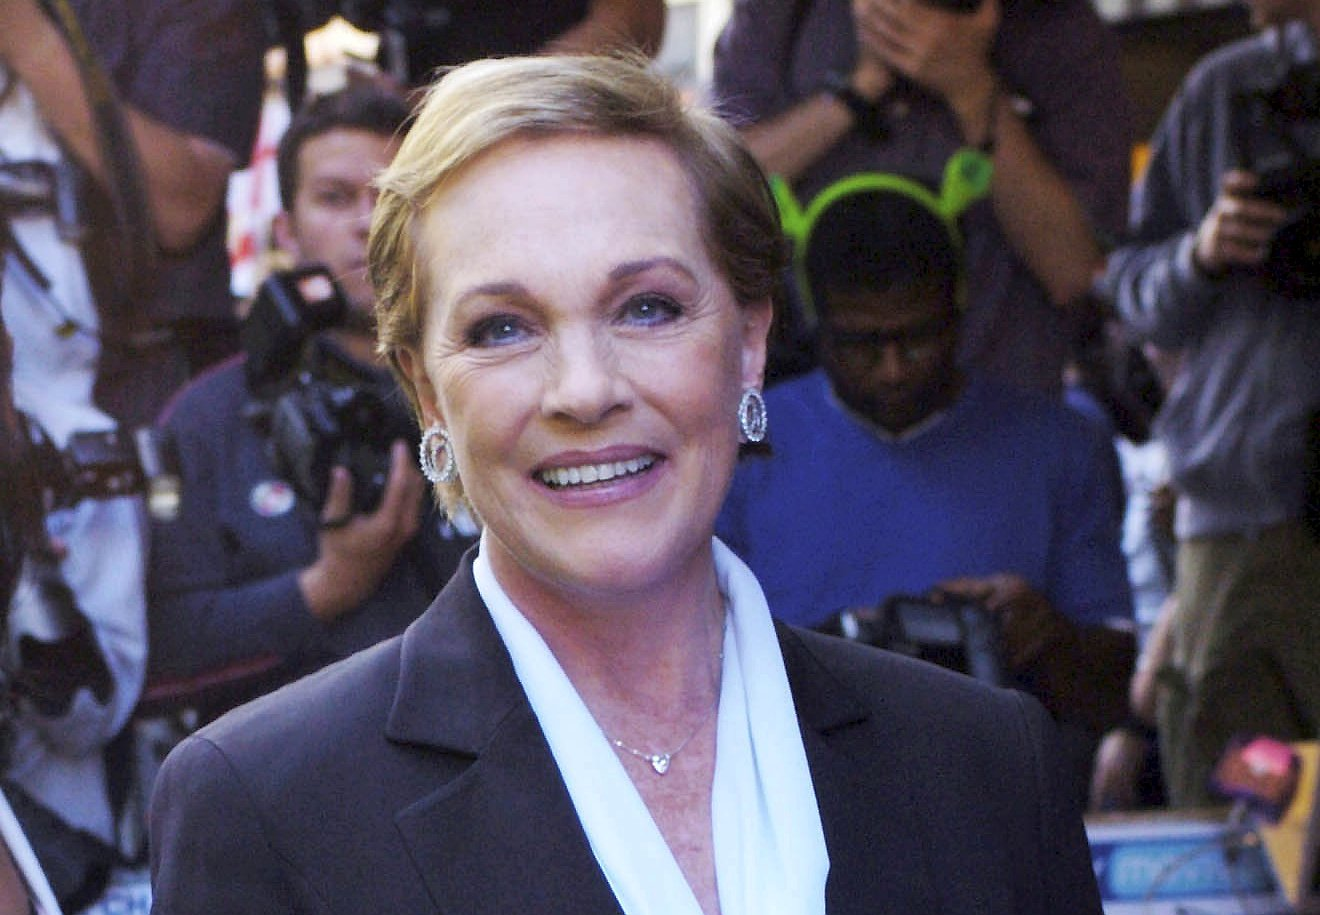 julie andrews imdbjulie andrews song, julie andrews - stay awake, julie andrews whistling away the dark, julie andrews books, julie andrews 2018, julie andrews wiki, julie andrews imdb, julie andrews edelweiss, julie andrews dance, julie andrews fan mail, julie andrews impossible, julie andrews the boyfriend, julie andrews movies, julie andrews mary poppins song, julie andrews victor victoria, julie andrews vocal range, julie andrews official, julie andrews venice film festival, julie andrews stay awake lyrics, julie andrews aquaman scene